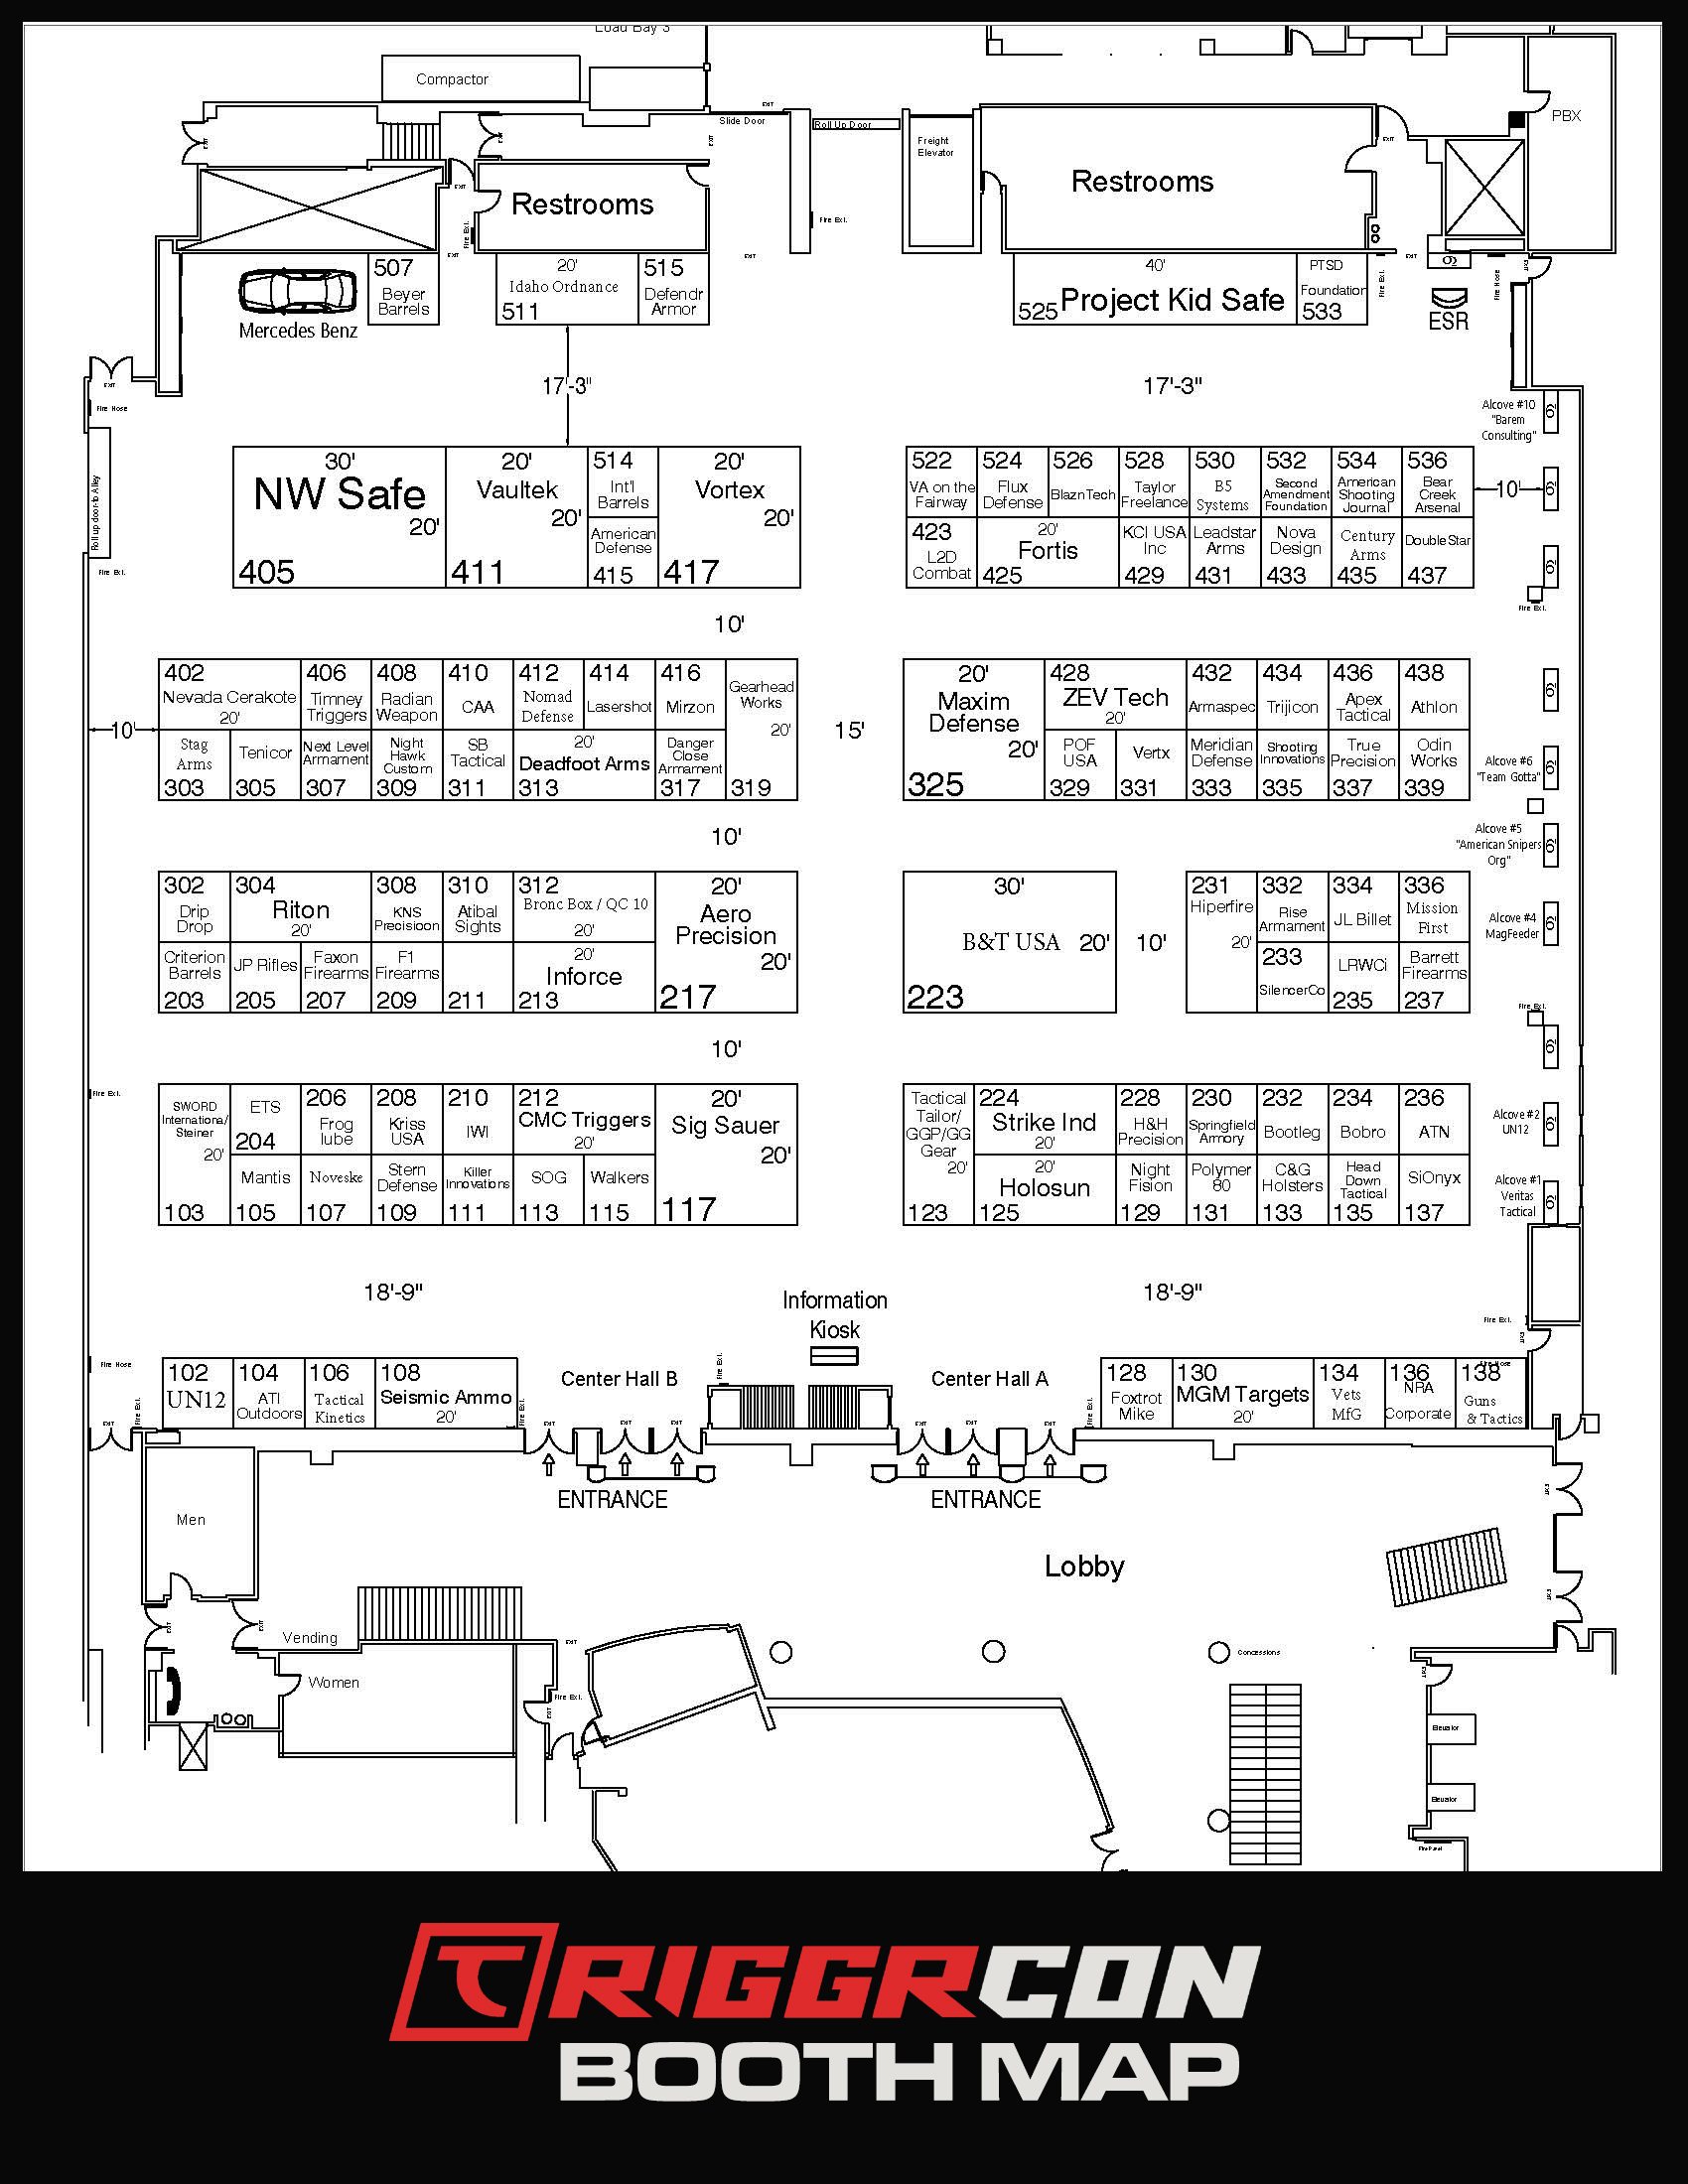 Triggrcon Booth Map